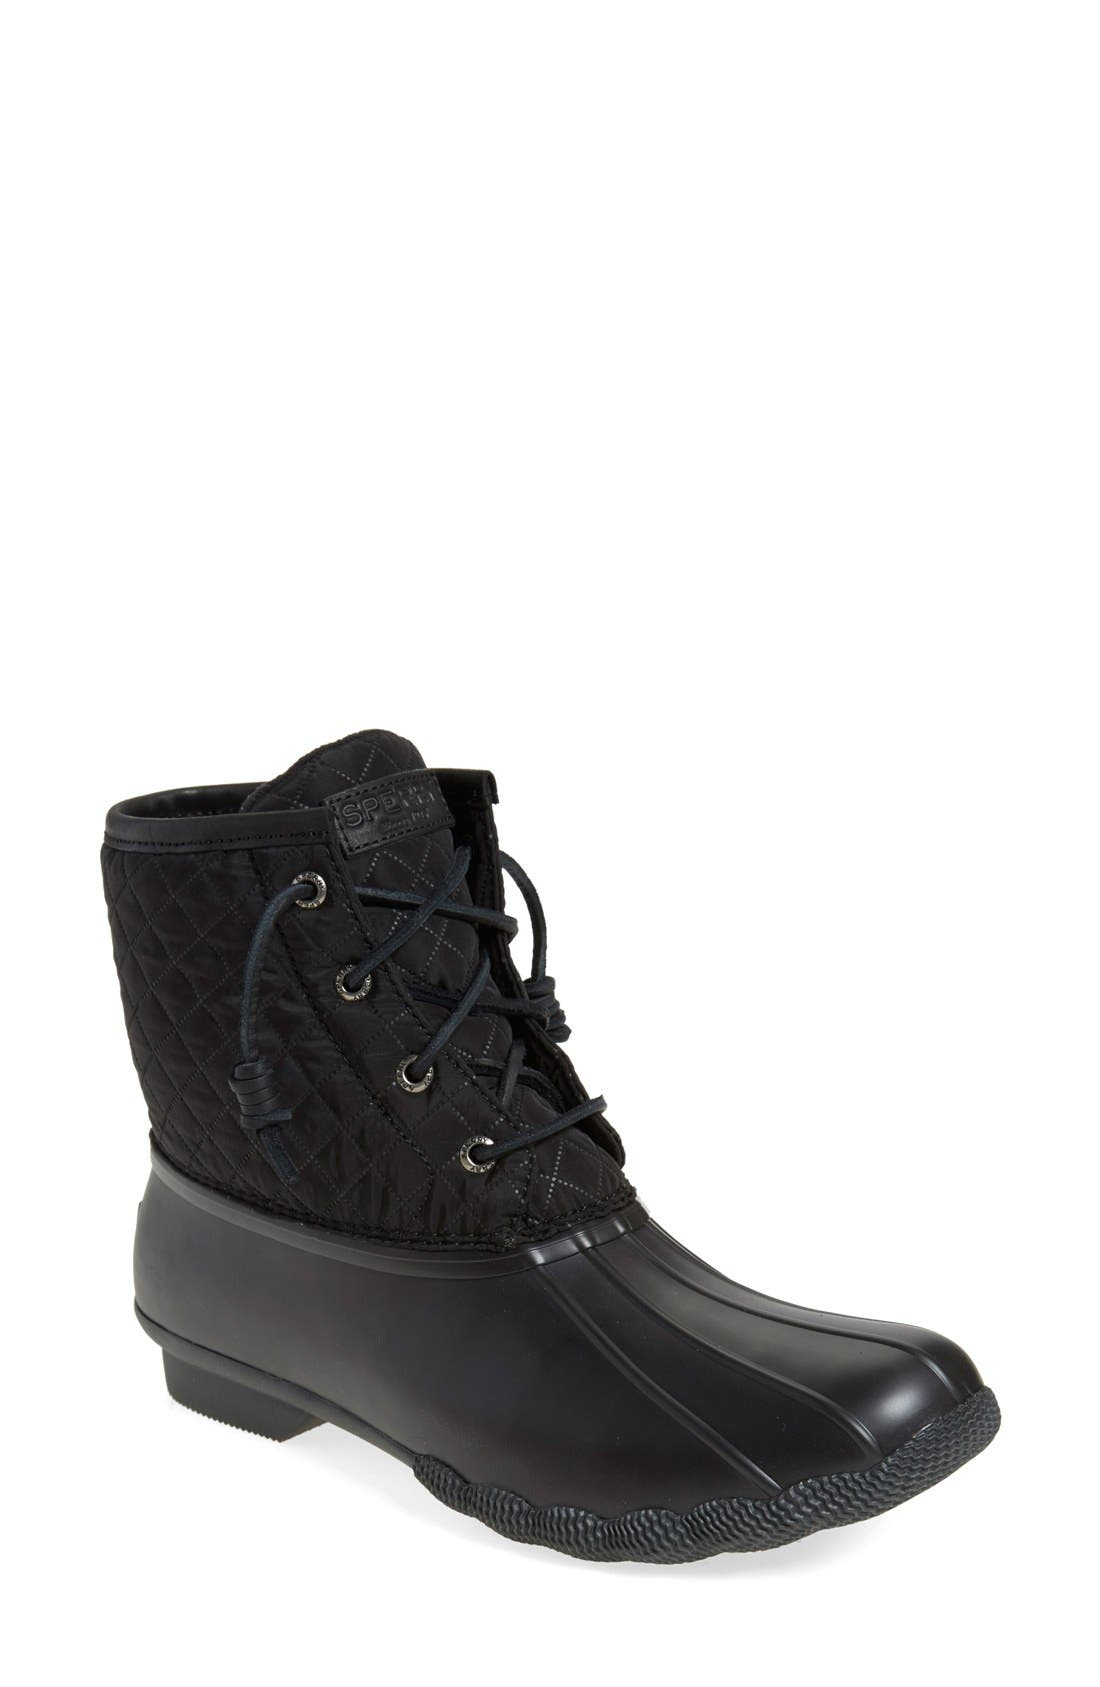 Main Image - Sperry 'Saltwater - Quilted' Duck Boot (Women)